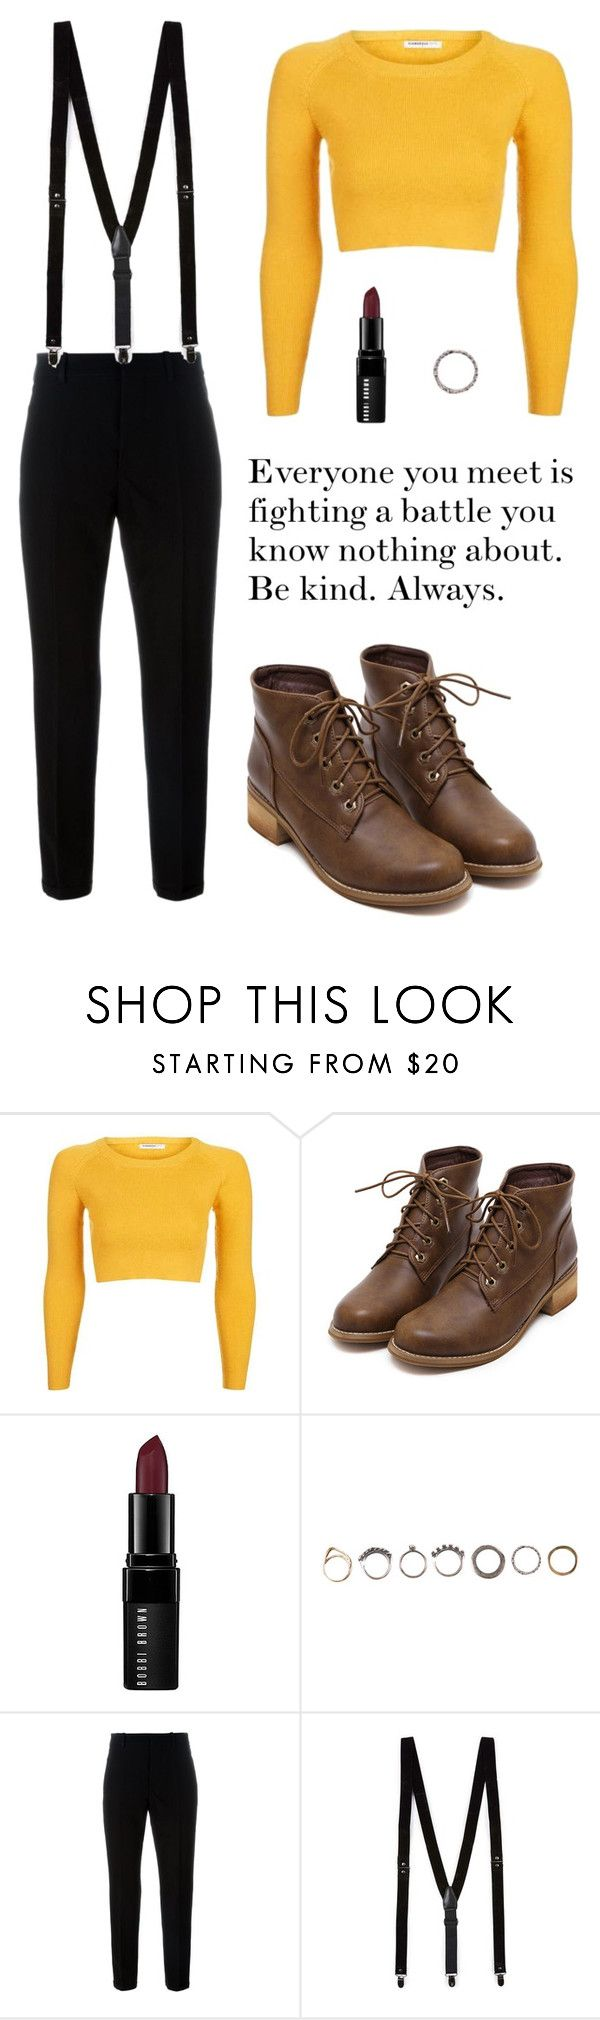 """#76"" by howl-owl ❤ liked on Polyvore featuring Topshop, Bobbi Brown Cosmetics, Iosselliani, Marni, Topman, noora, skam, noorasaetre, skamnoora and nooraskam"